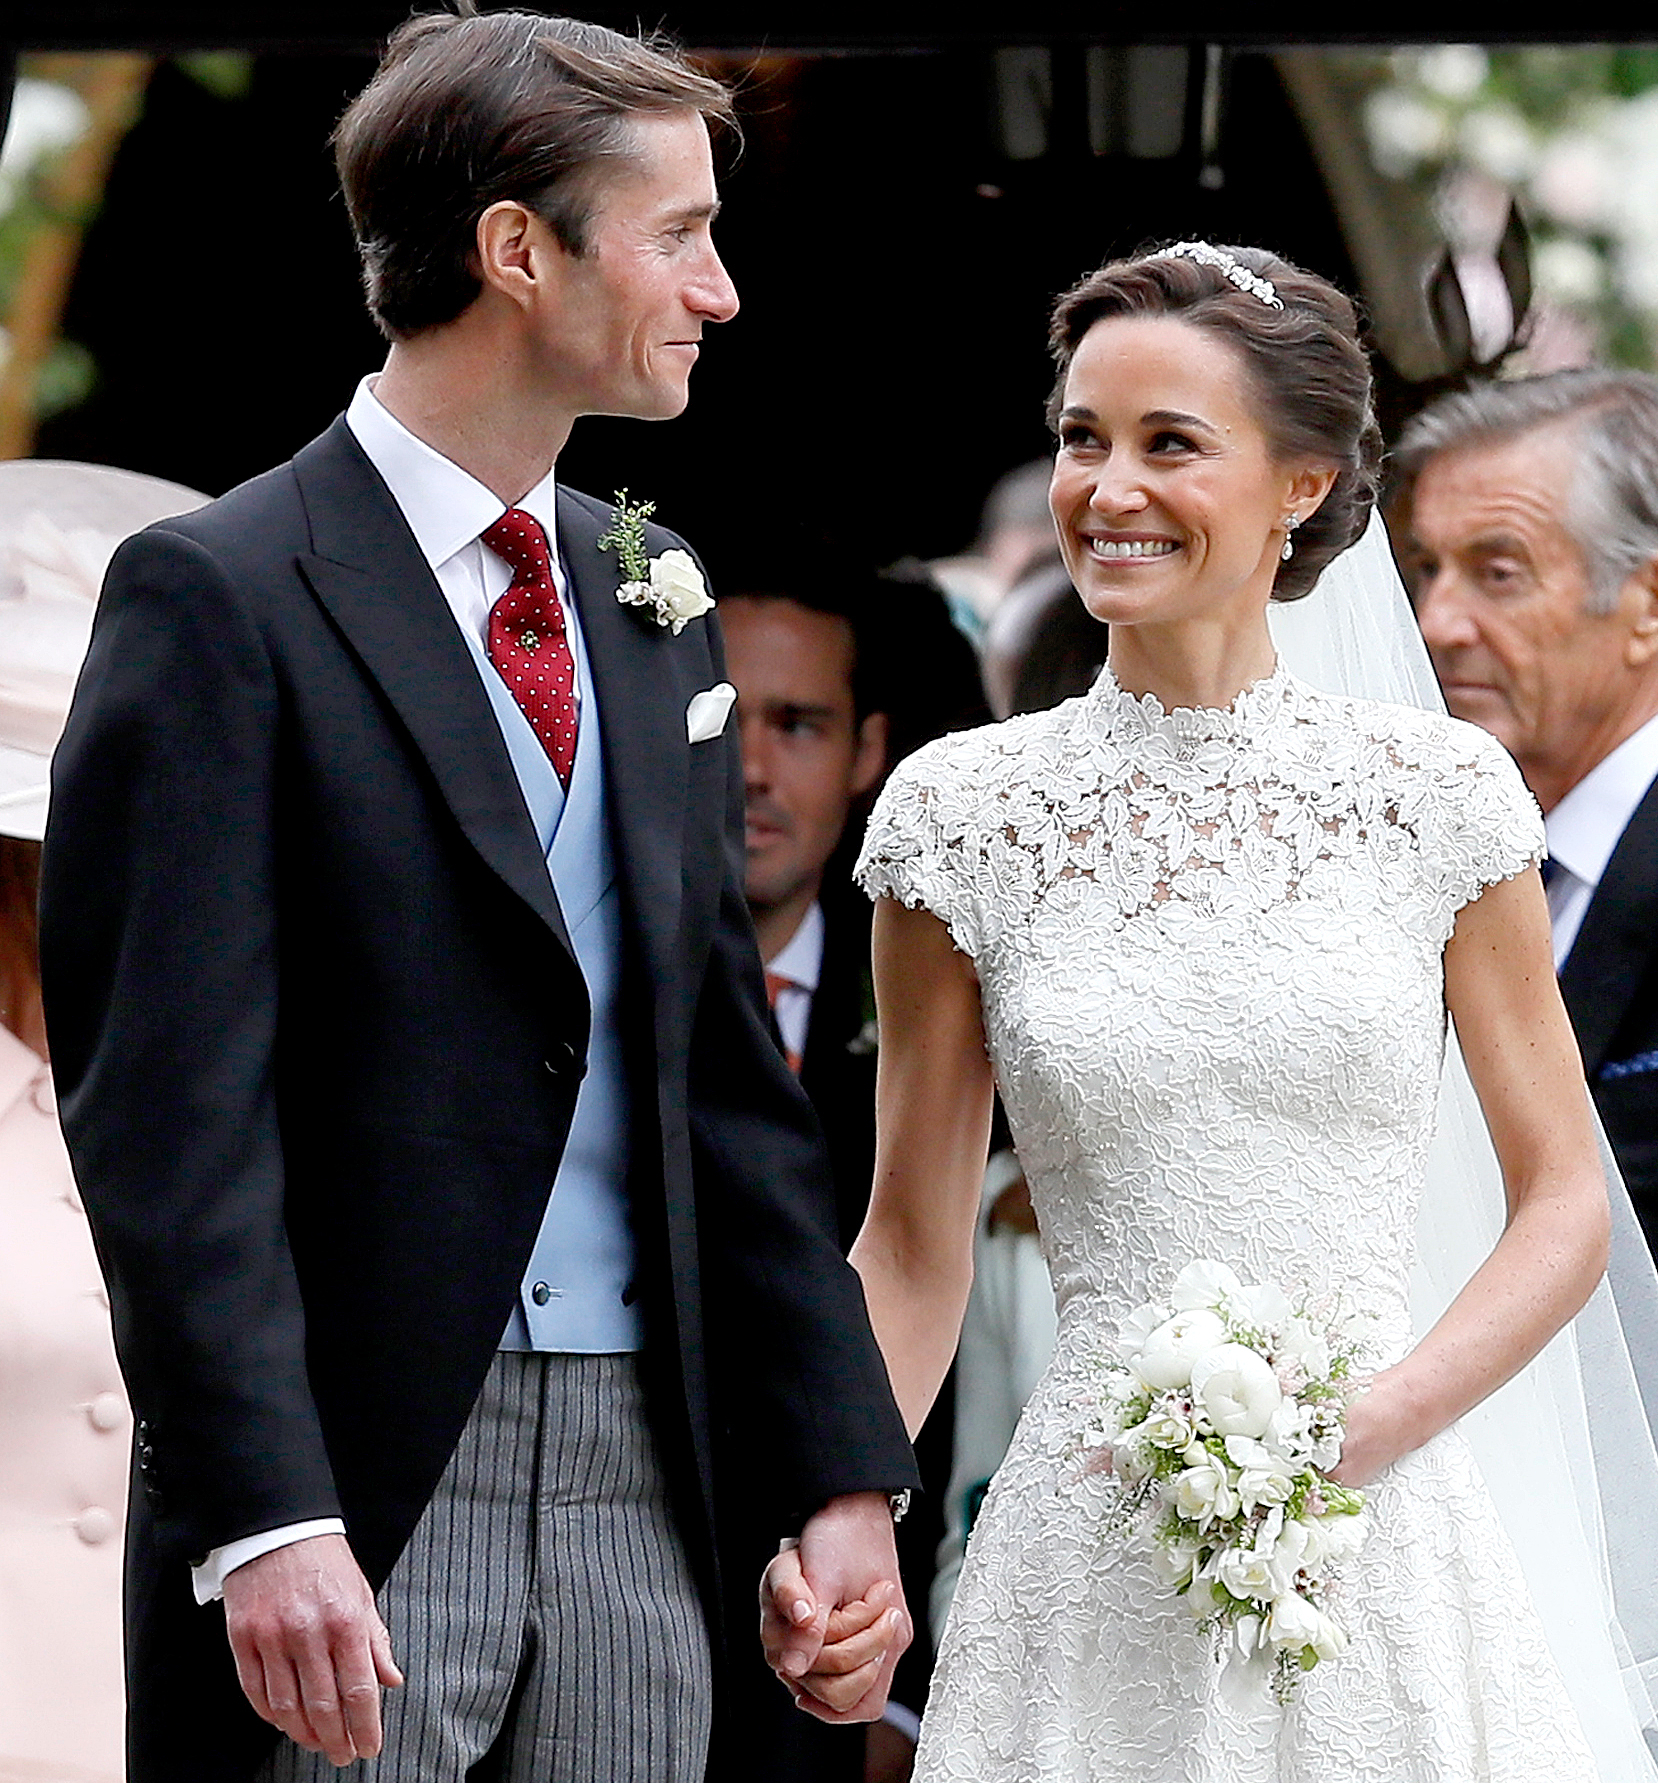 Pippa Middleton confirms the rumors - she's pregnant